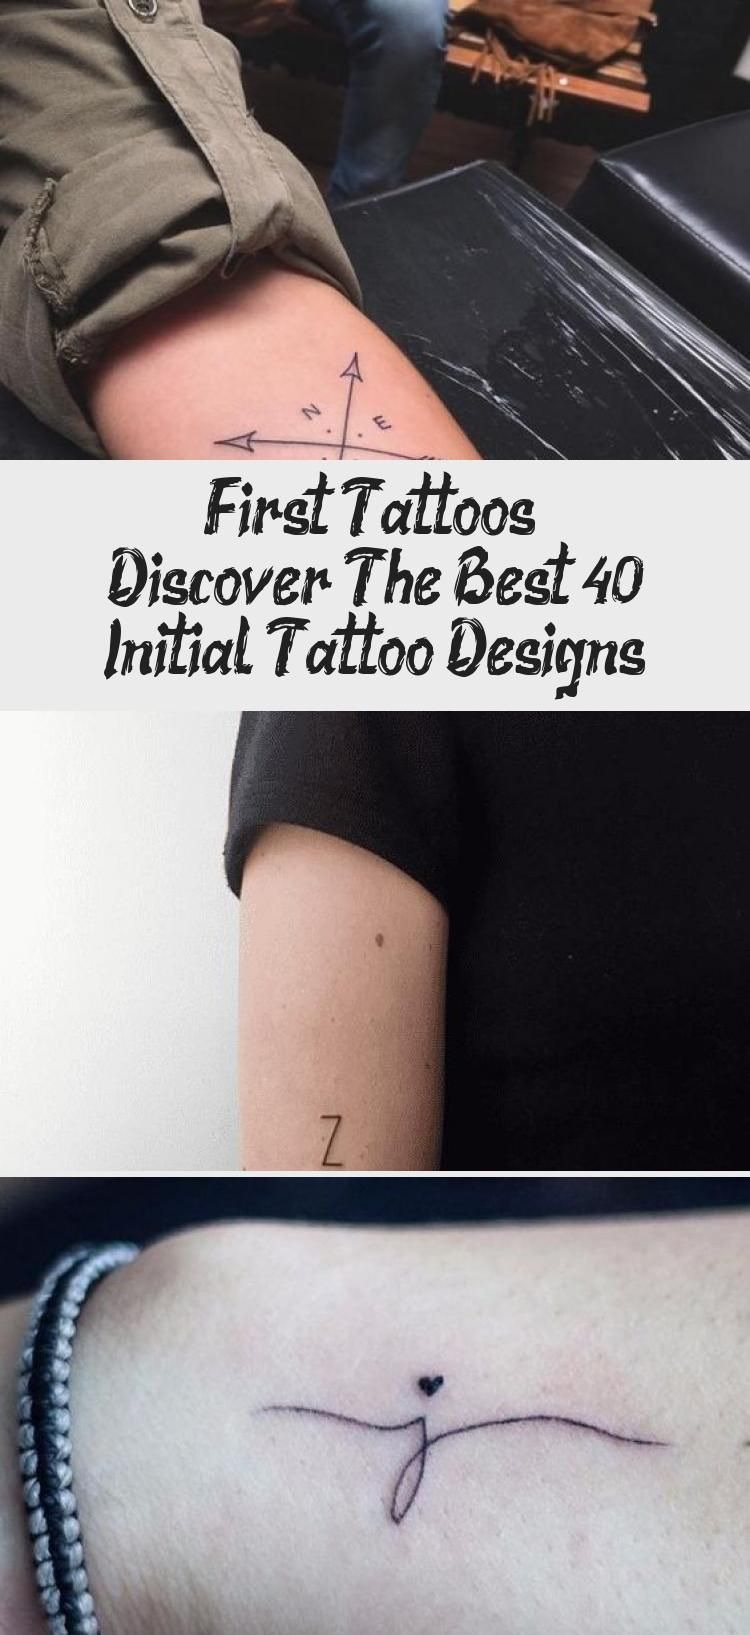 First tattoos  Discover the best 40 Initial Tattoo Designs initial tattoo